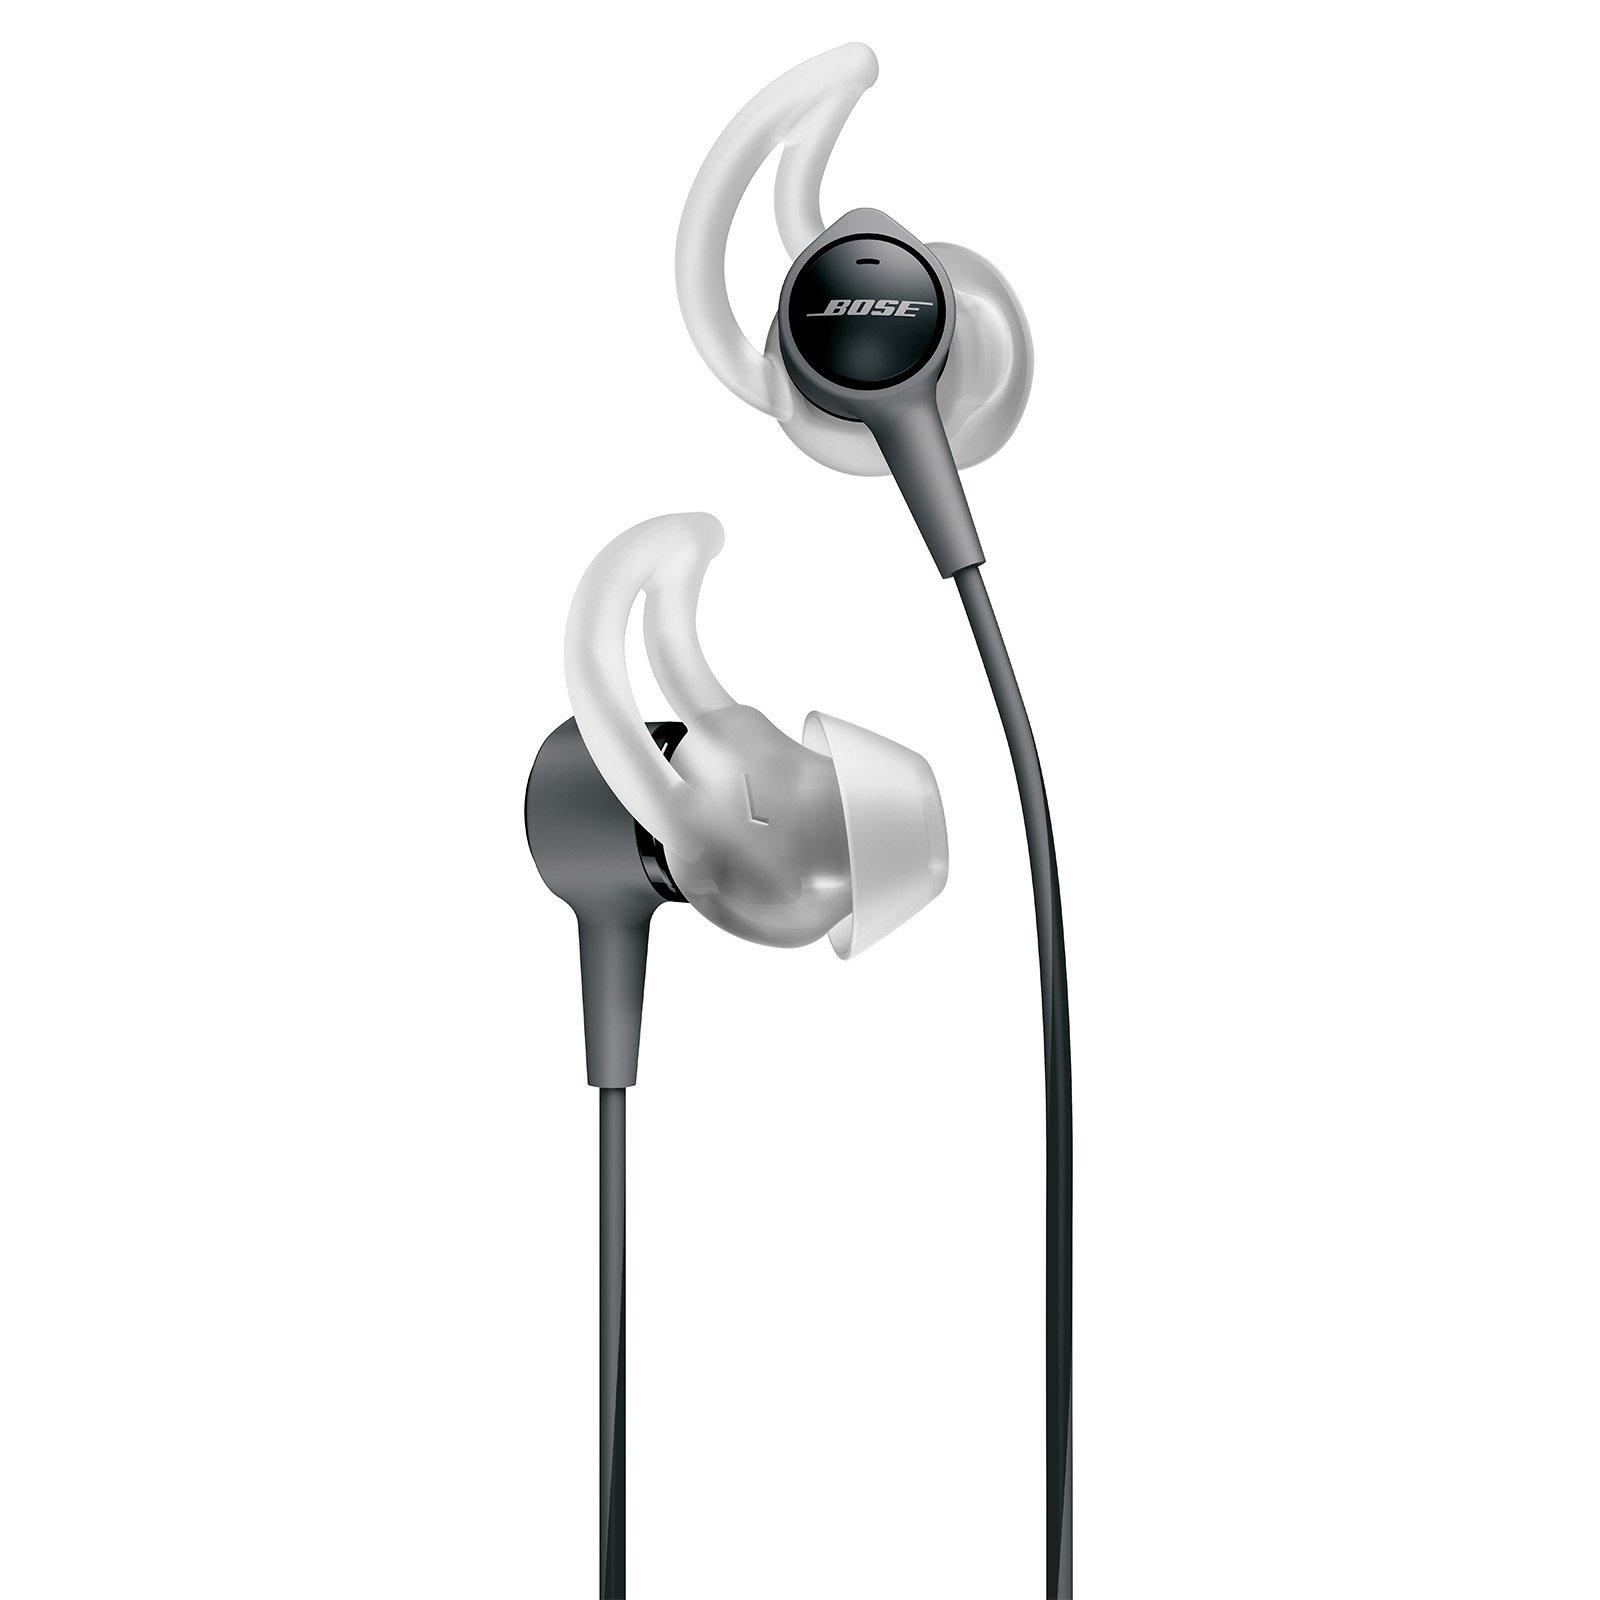 Bose SoundTrue Ultra in-ear headphones - Apple devices Charcoal by Bose